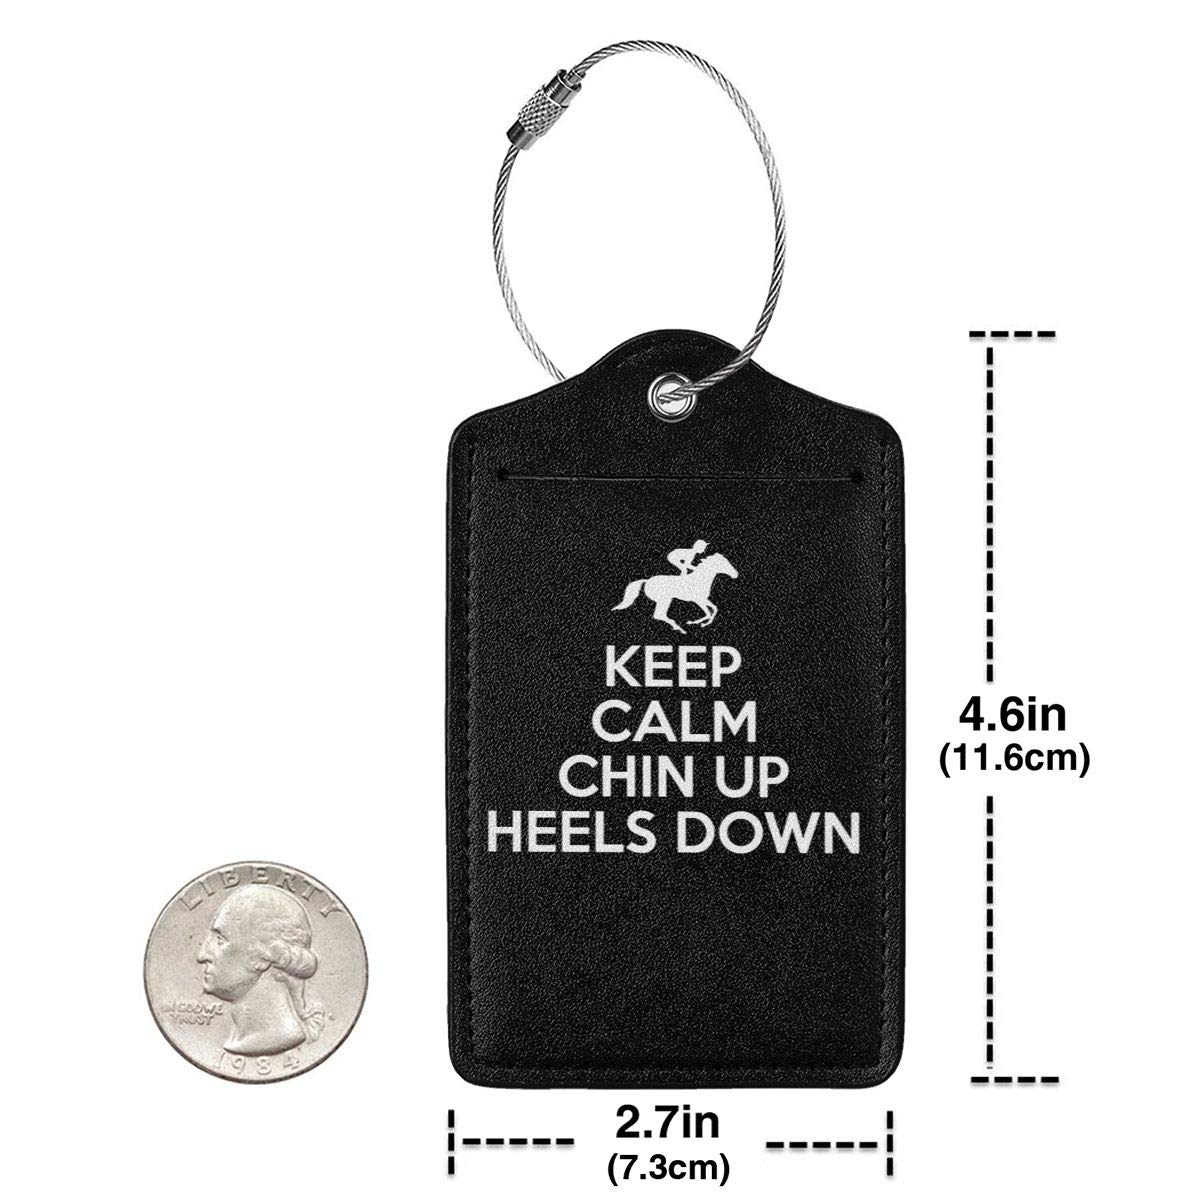 Keep Calm Chin Up Heels Down Horse Riding Leather Luggage Tag Travel ID Label For Baggage Suitcase